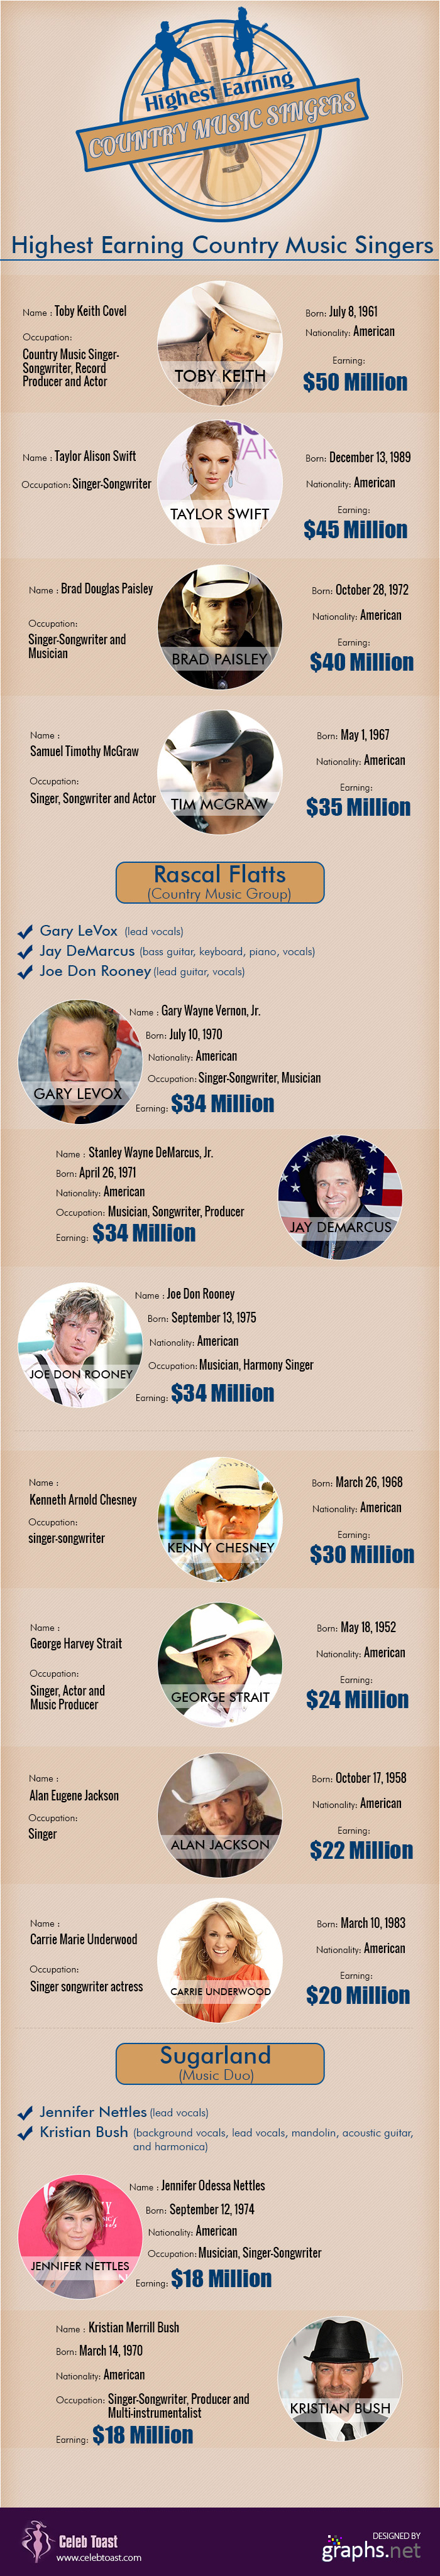 Most Popular American Music Singers